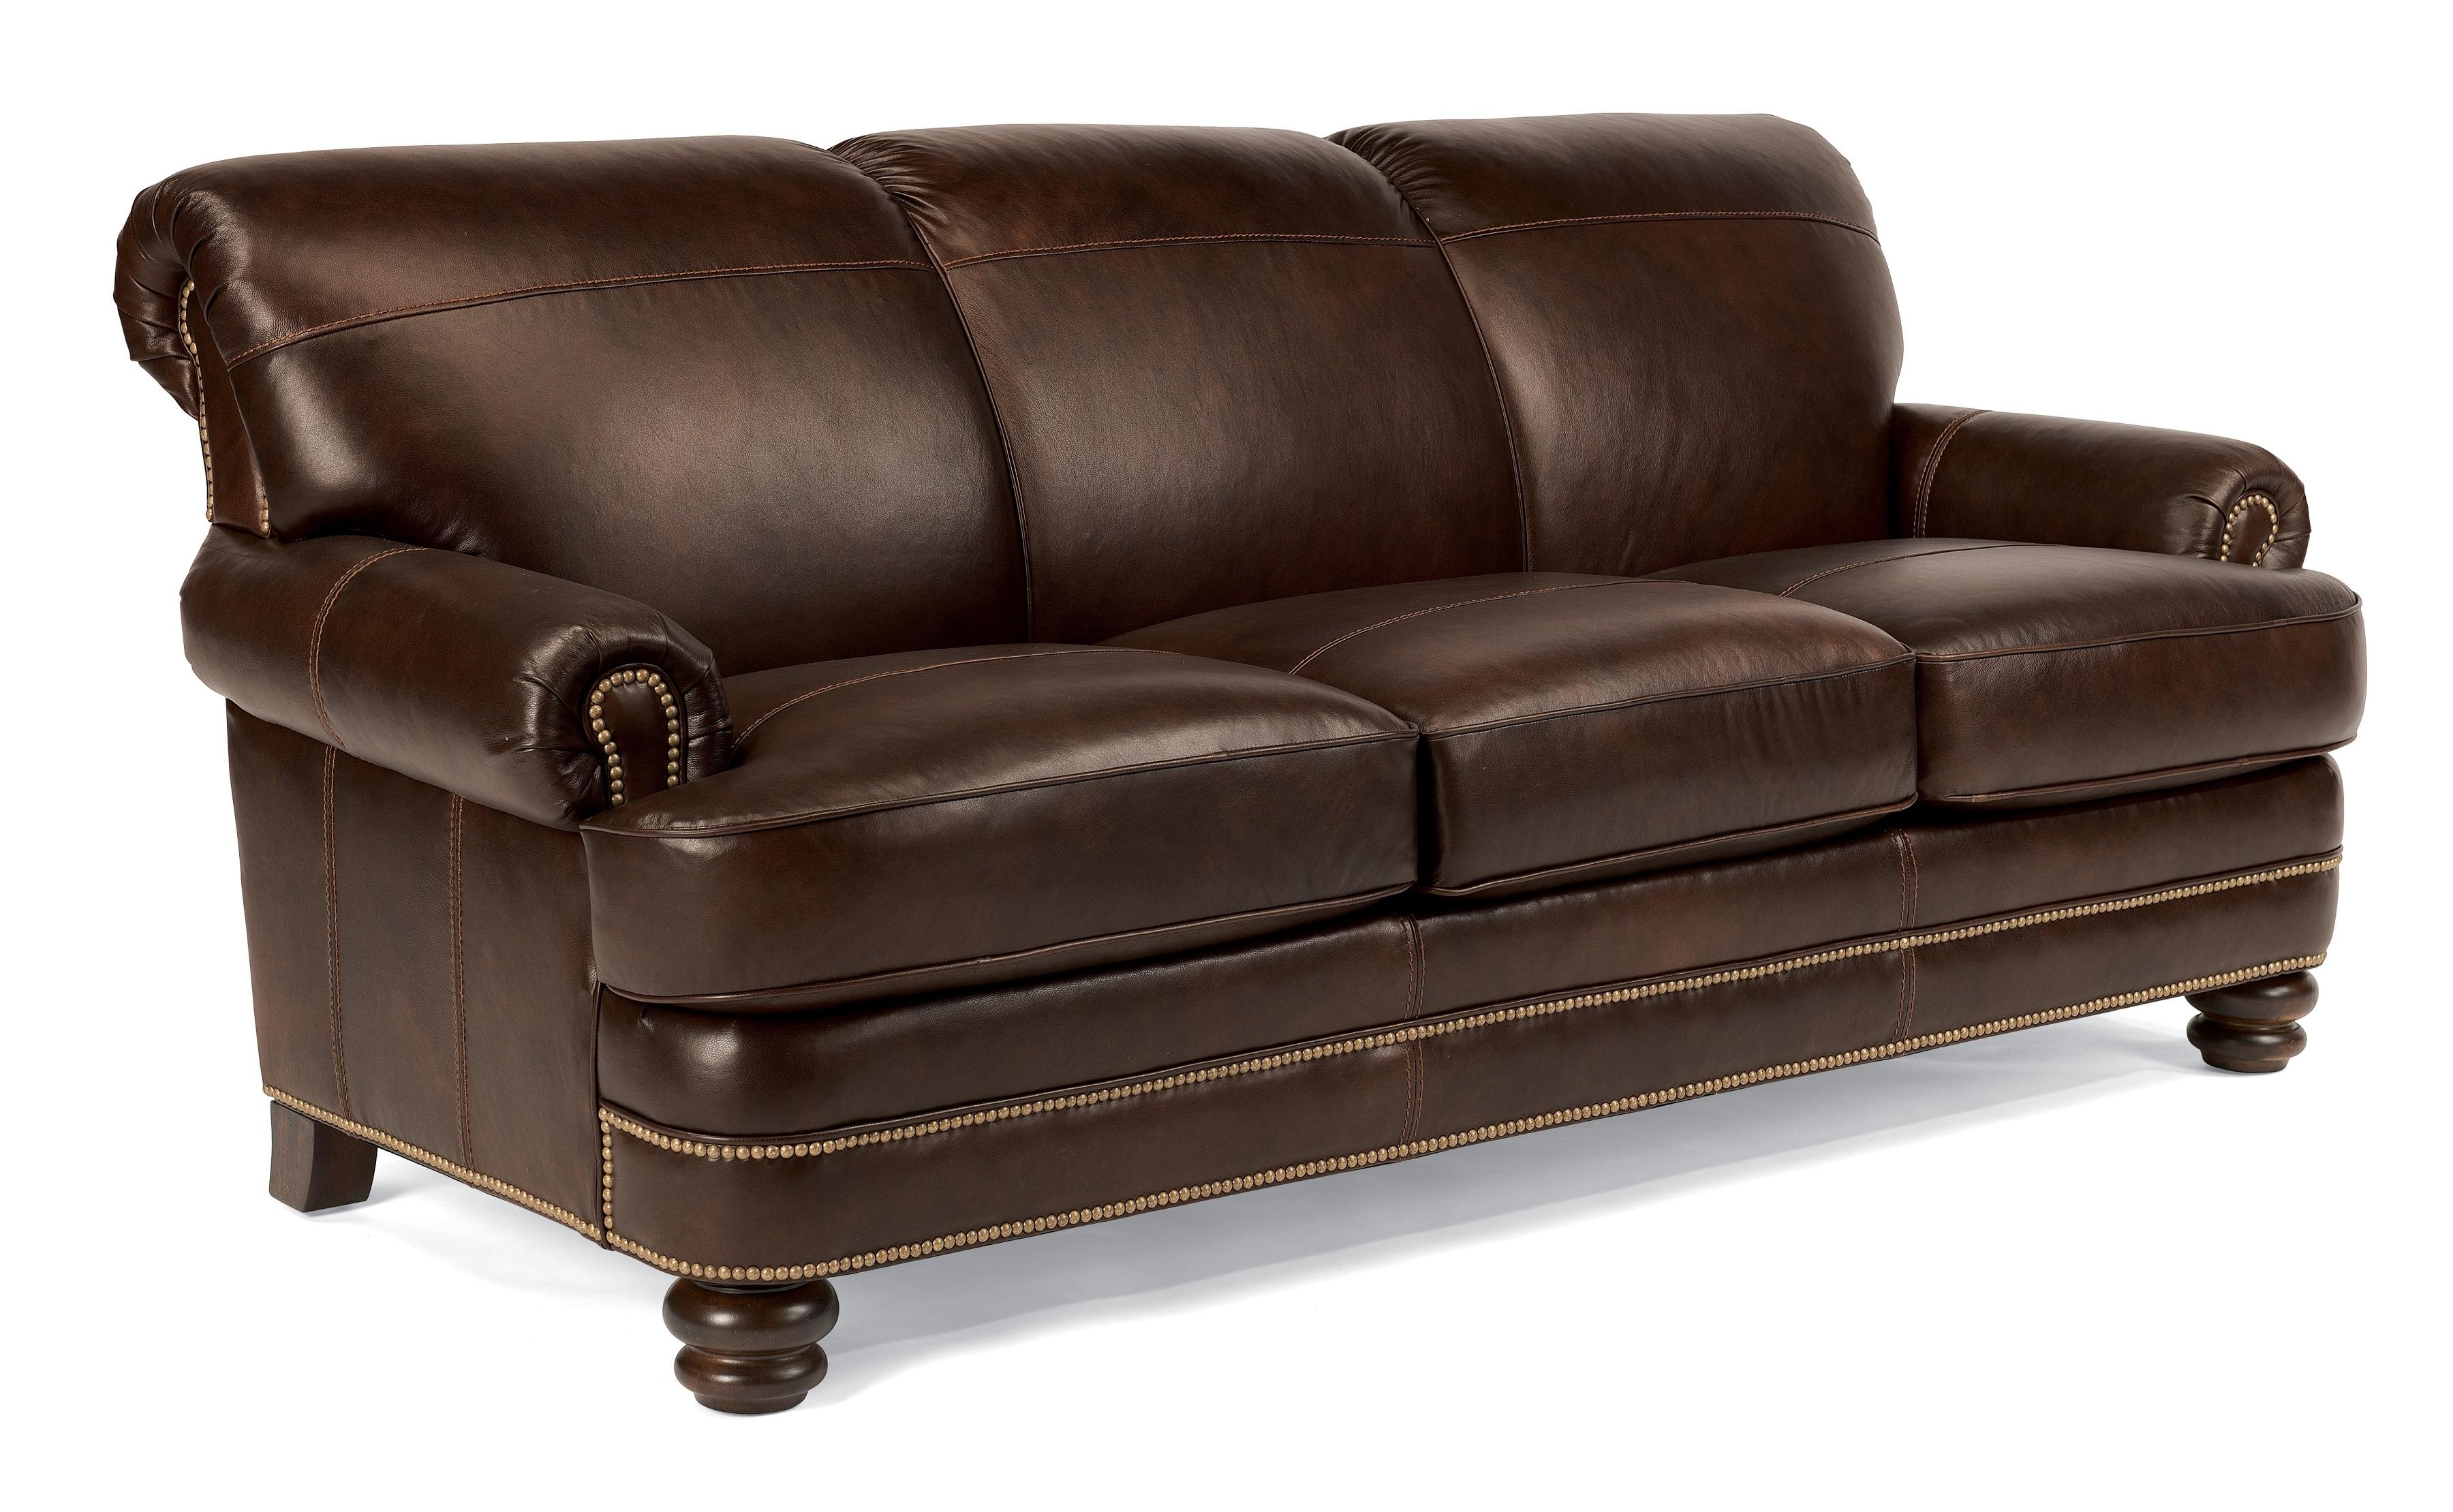 Frisco/francis – Sofa – 7791 31 Sofas From Flexsteel At Crowley Pertaining To Foster Leather Sofas (Image 14 of 20)